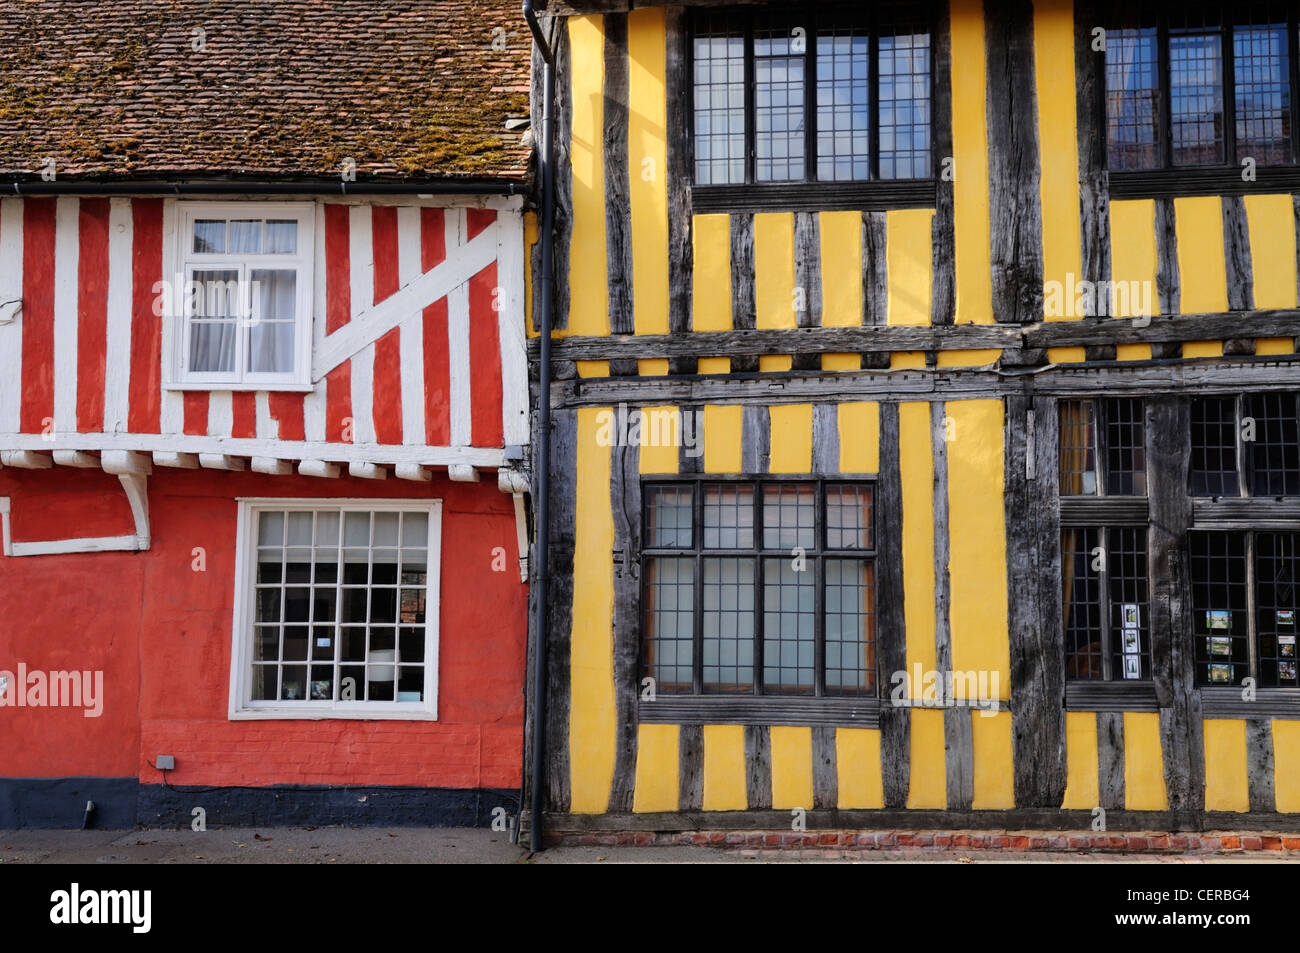 Half-timbered medieval buildings in the historic village of Lavenham. - Stock Image